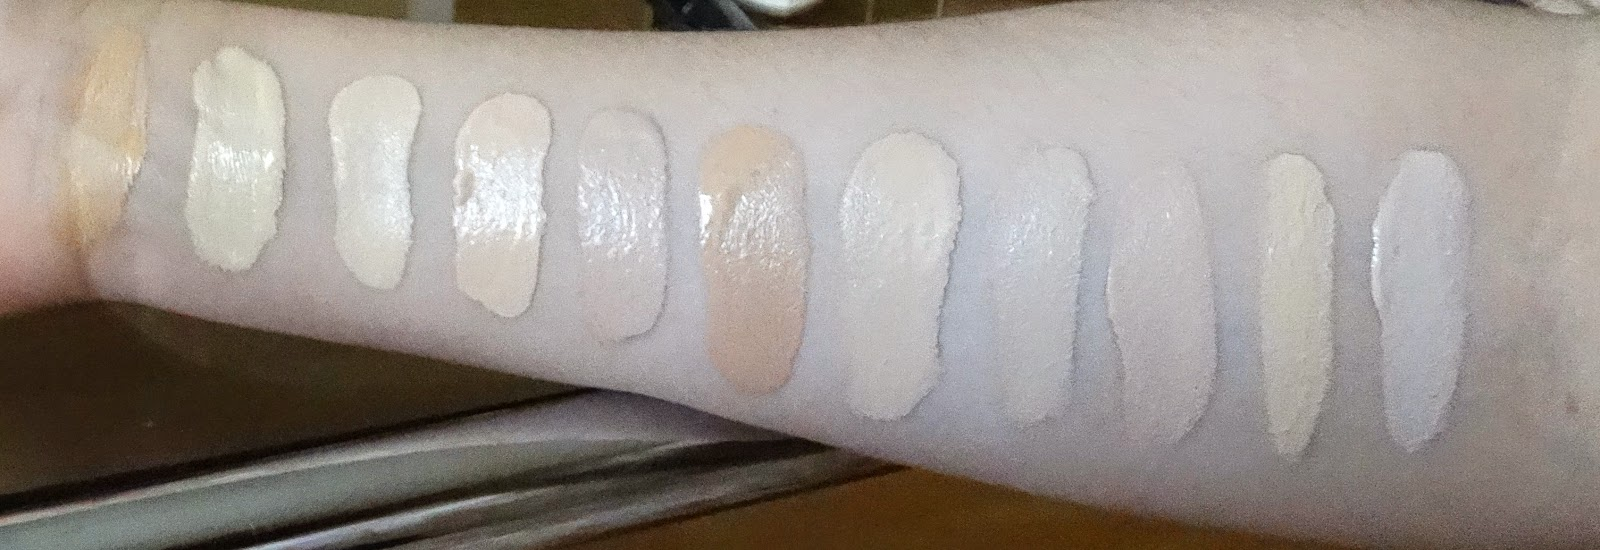 Pale foundation/BB cream/concealer swatches | Pale skin